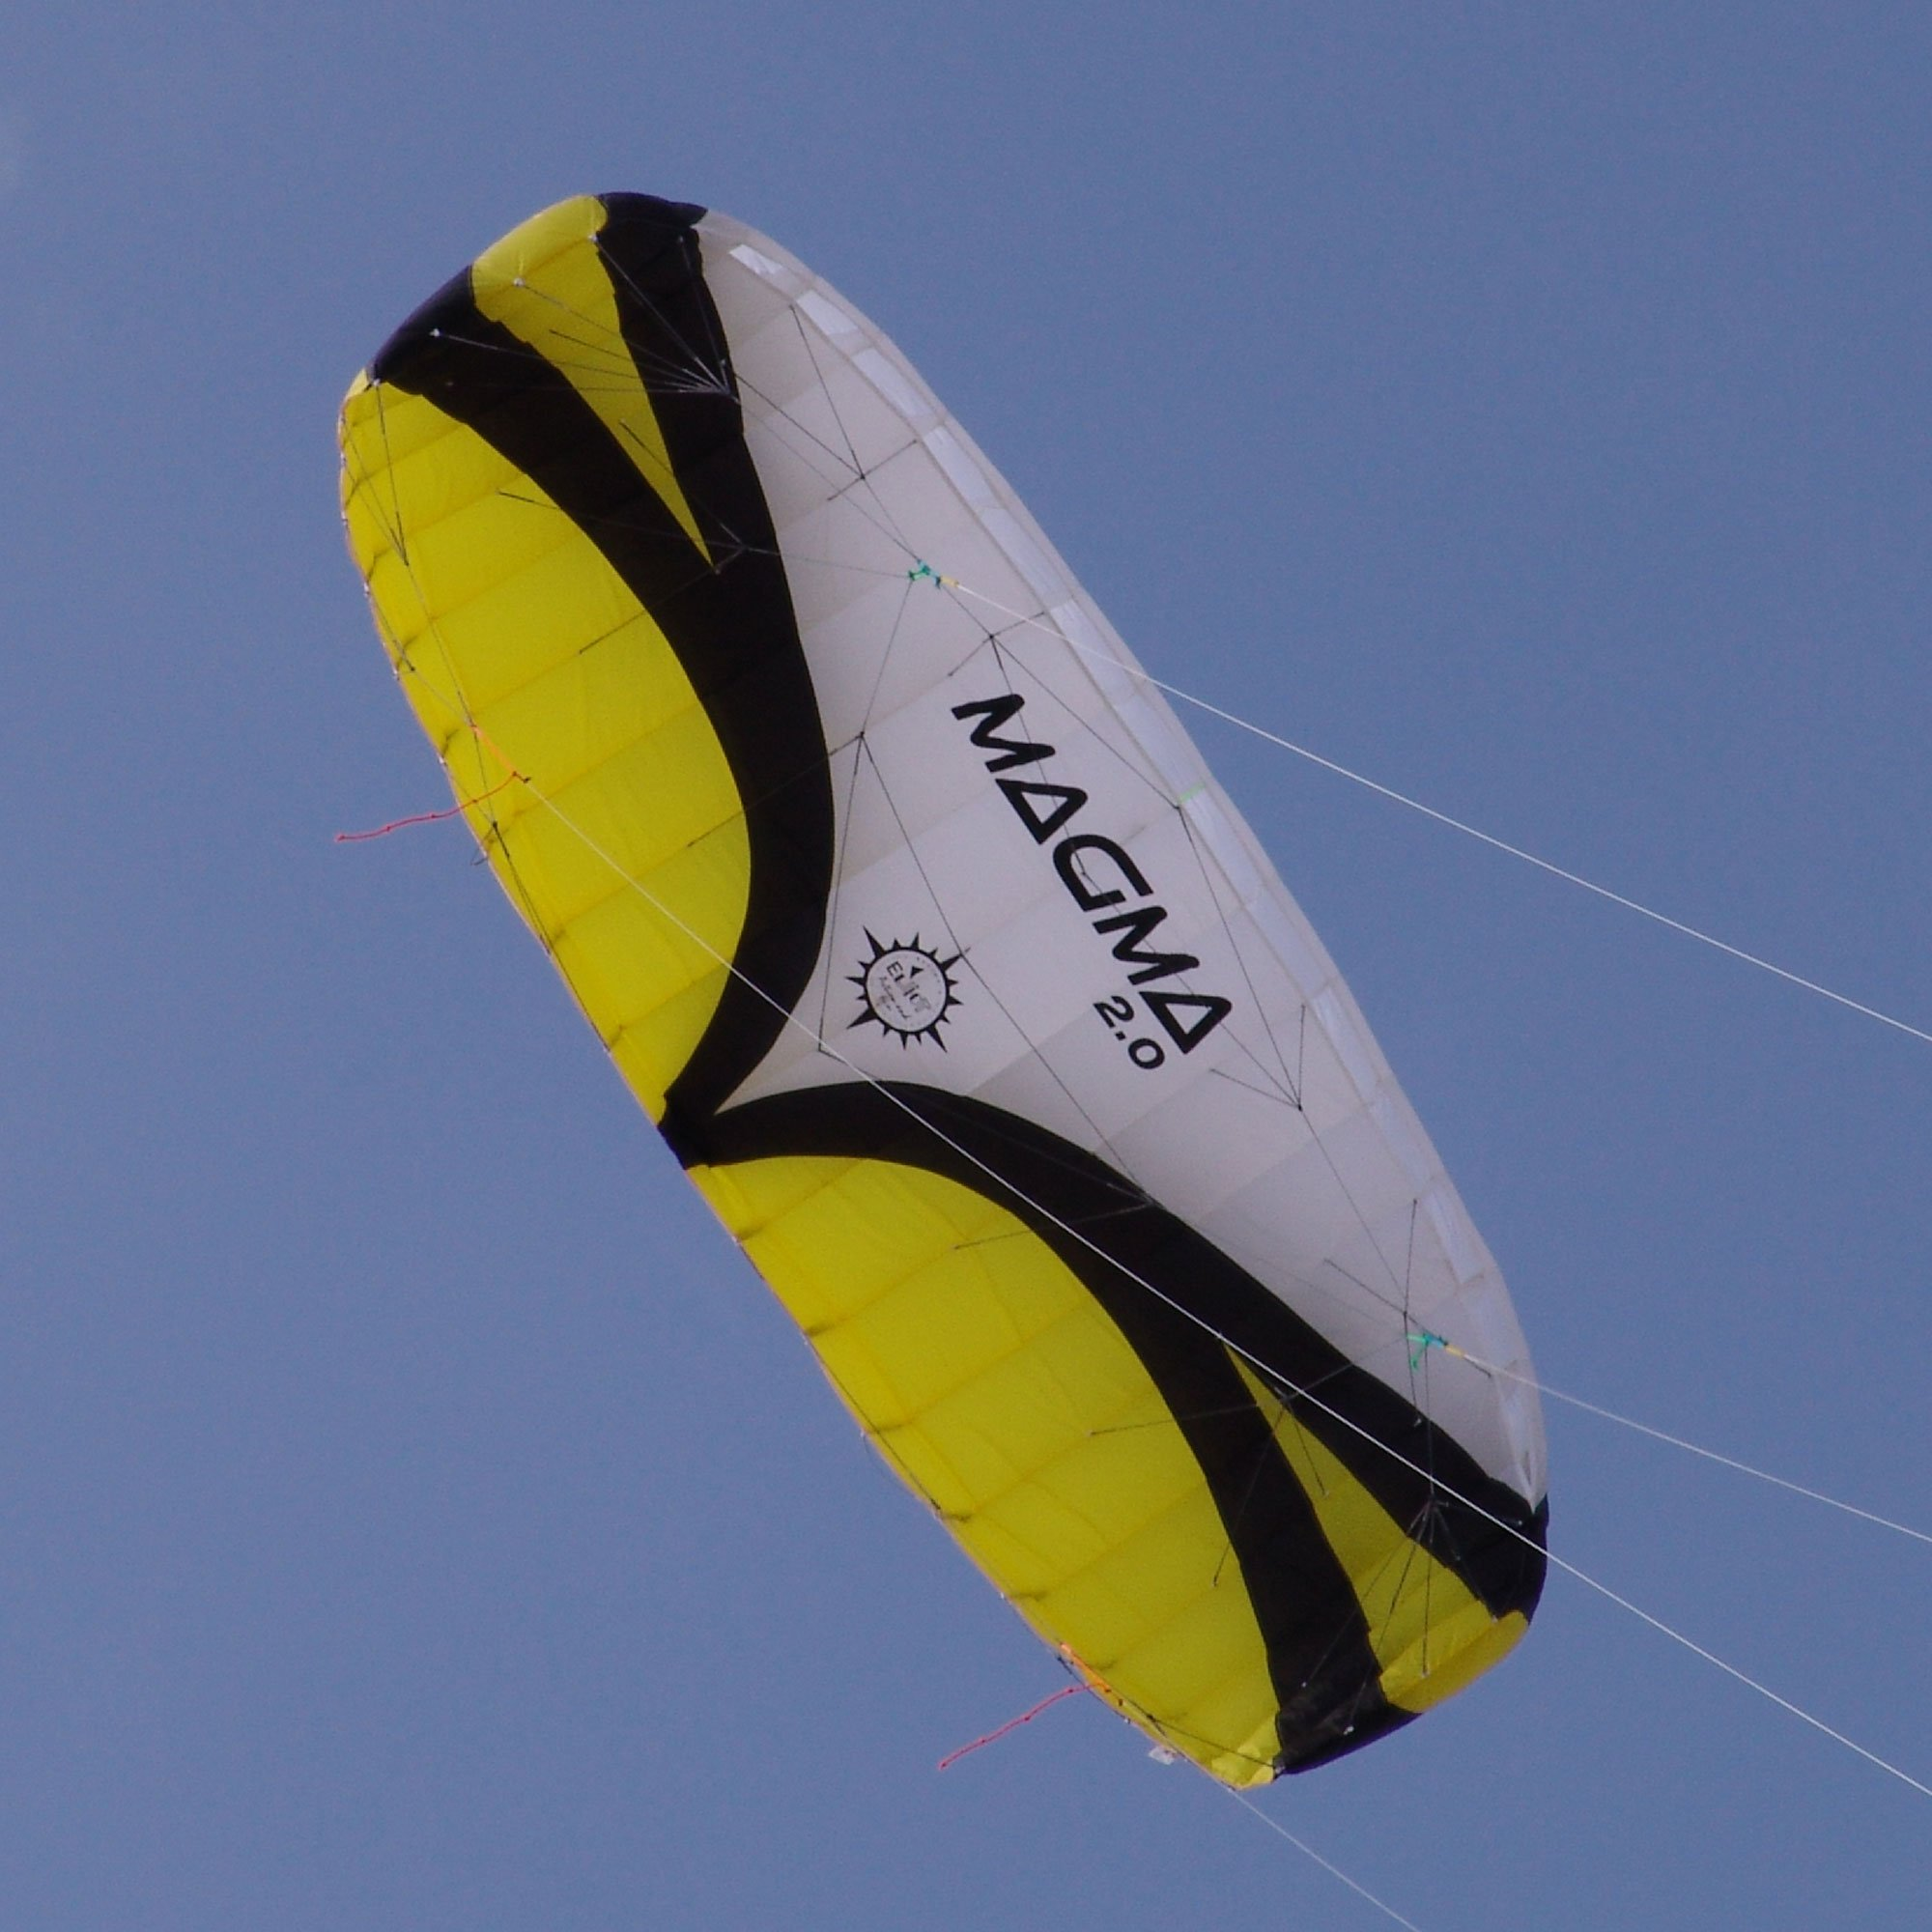 Magma 2.0 Quad Line Power Foil Stunt Kite by Elliot